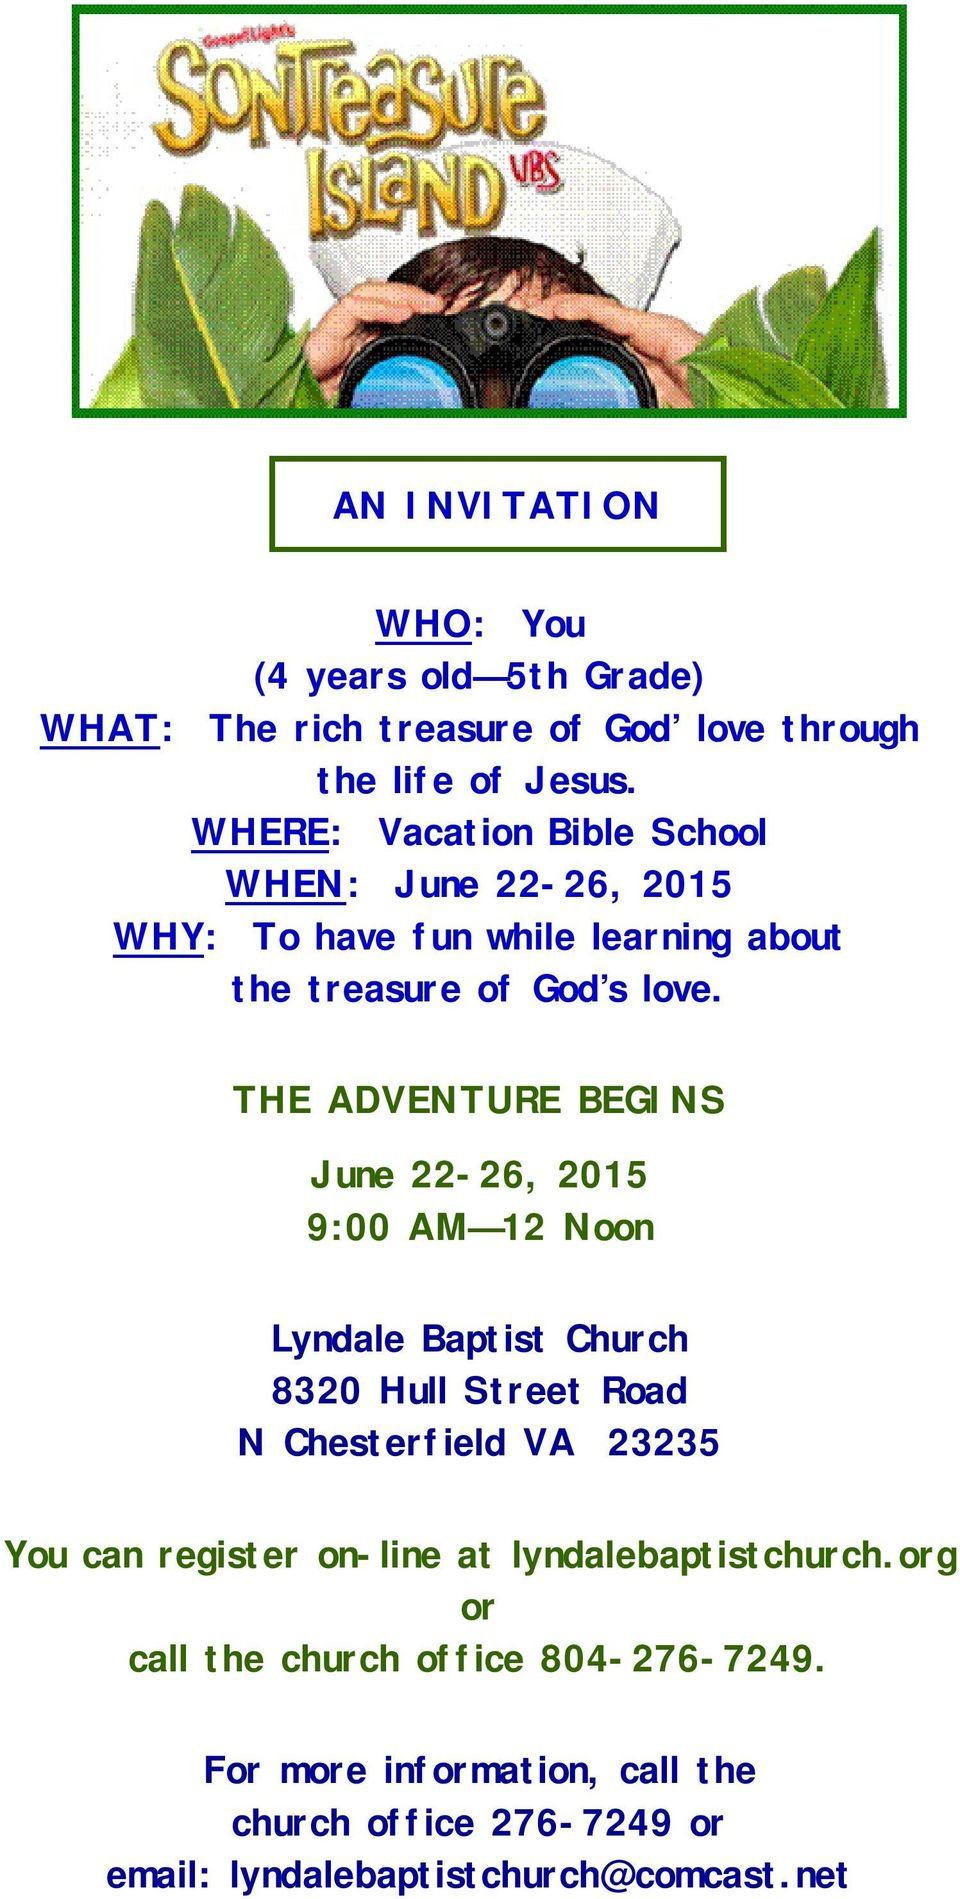 THE ADVENTURE BEGINS June 22-26, 2015 9:00 AM 12 Noon Lyndale Baptist Church 8320 Hull Street Road N Chesterfield VA 23235 You can